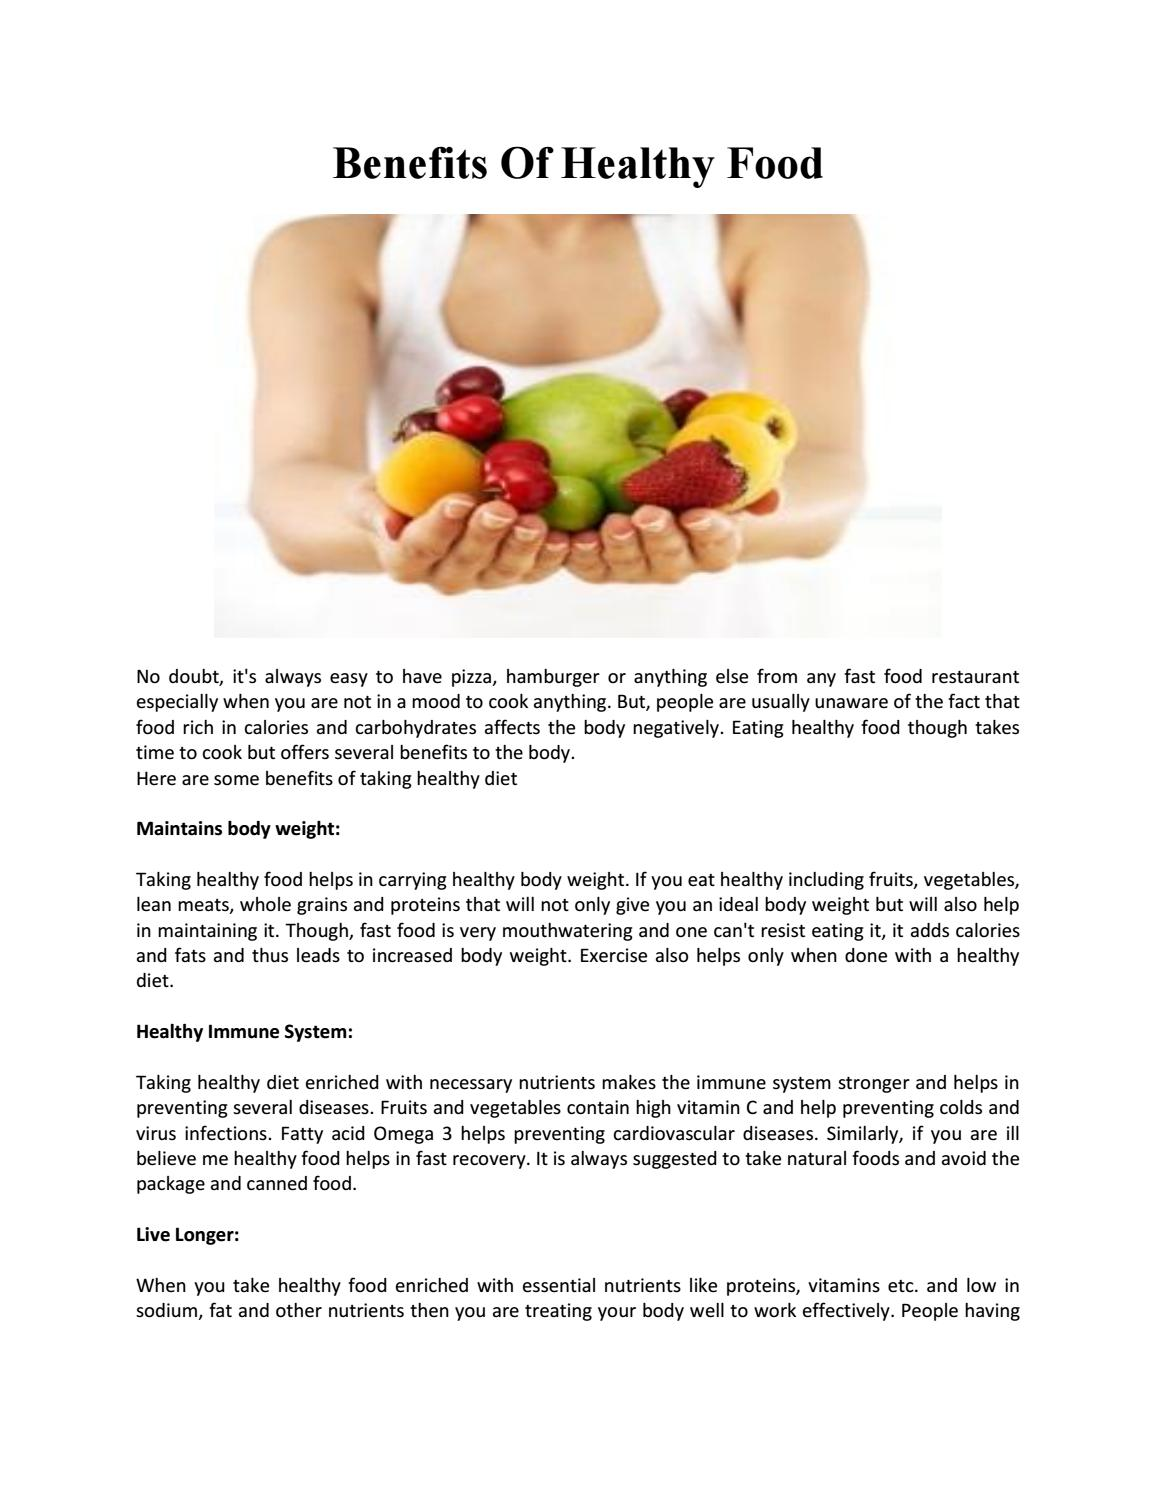 how a healthy diet affects the body